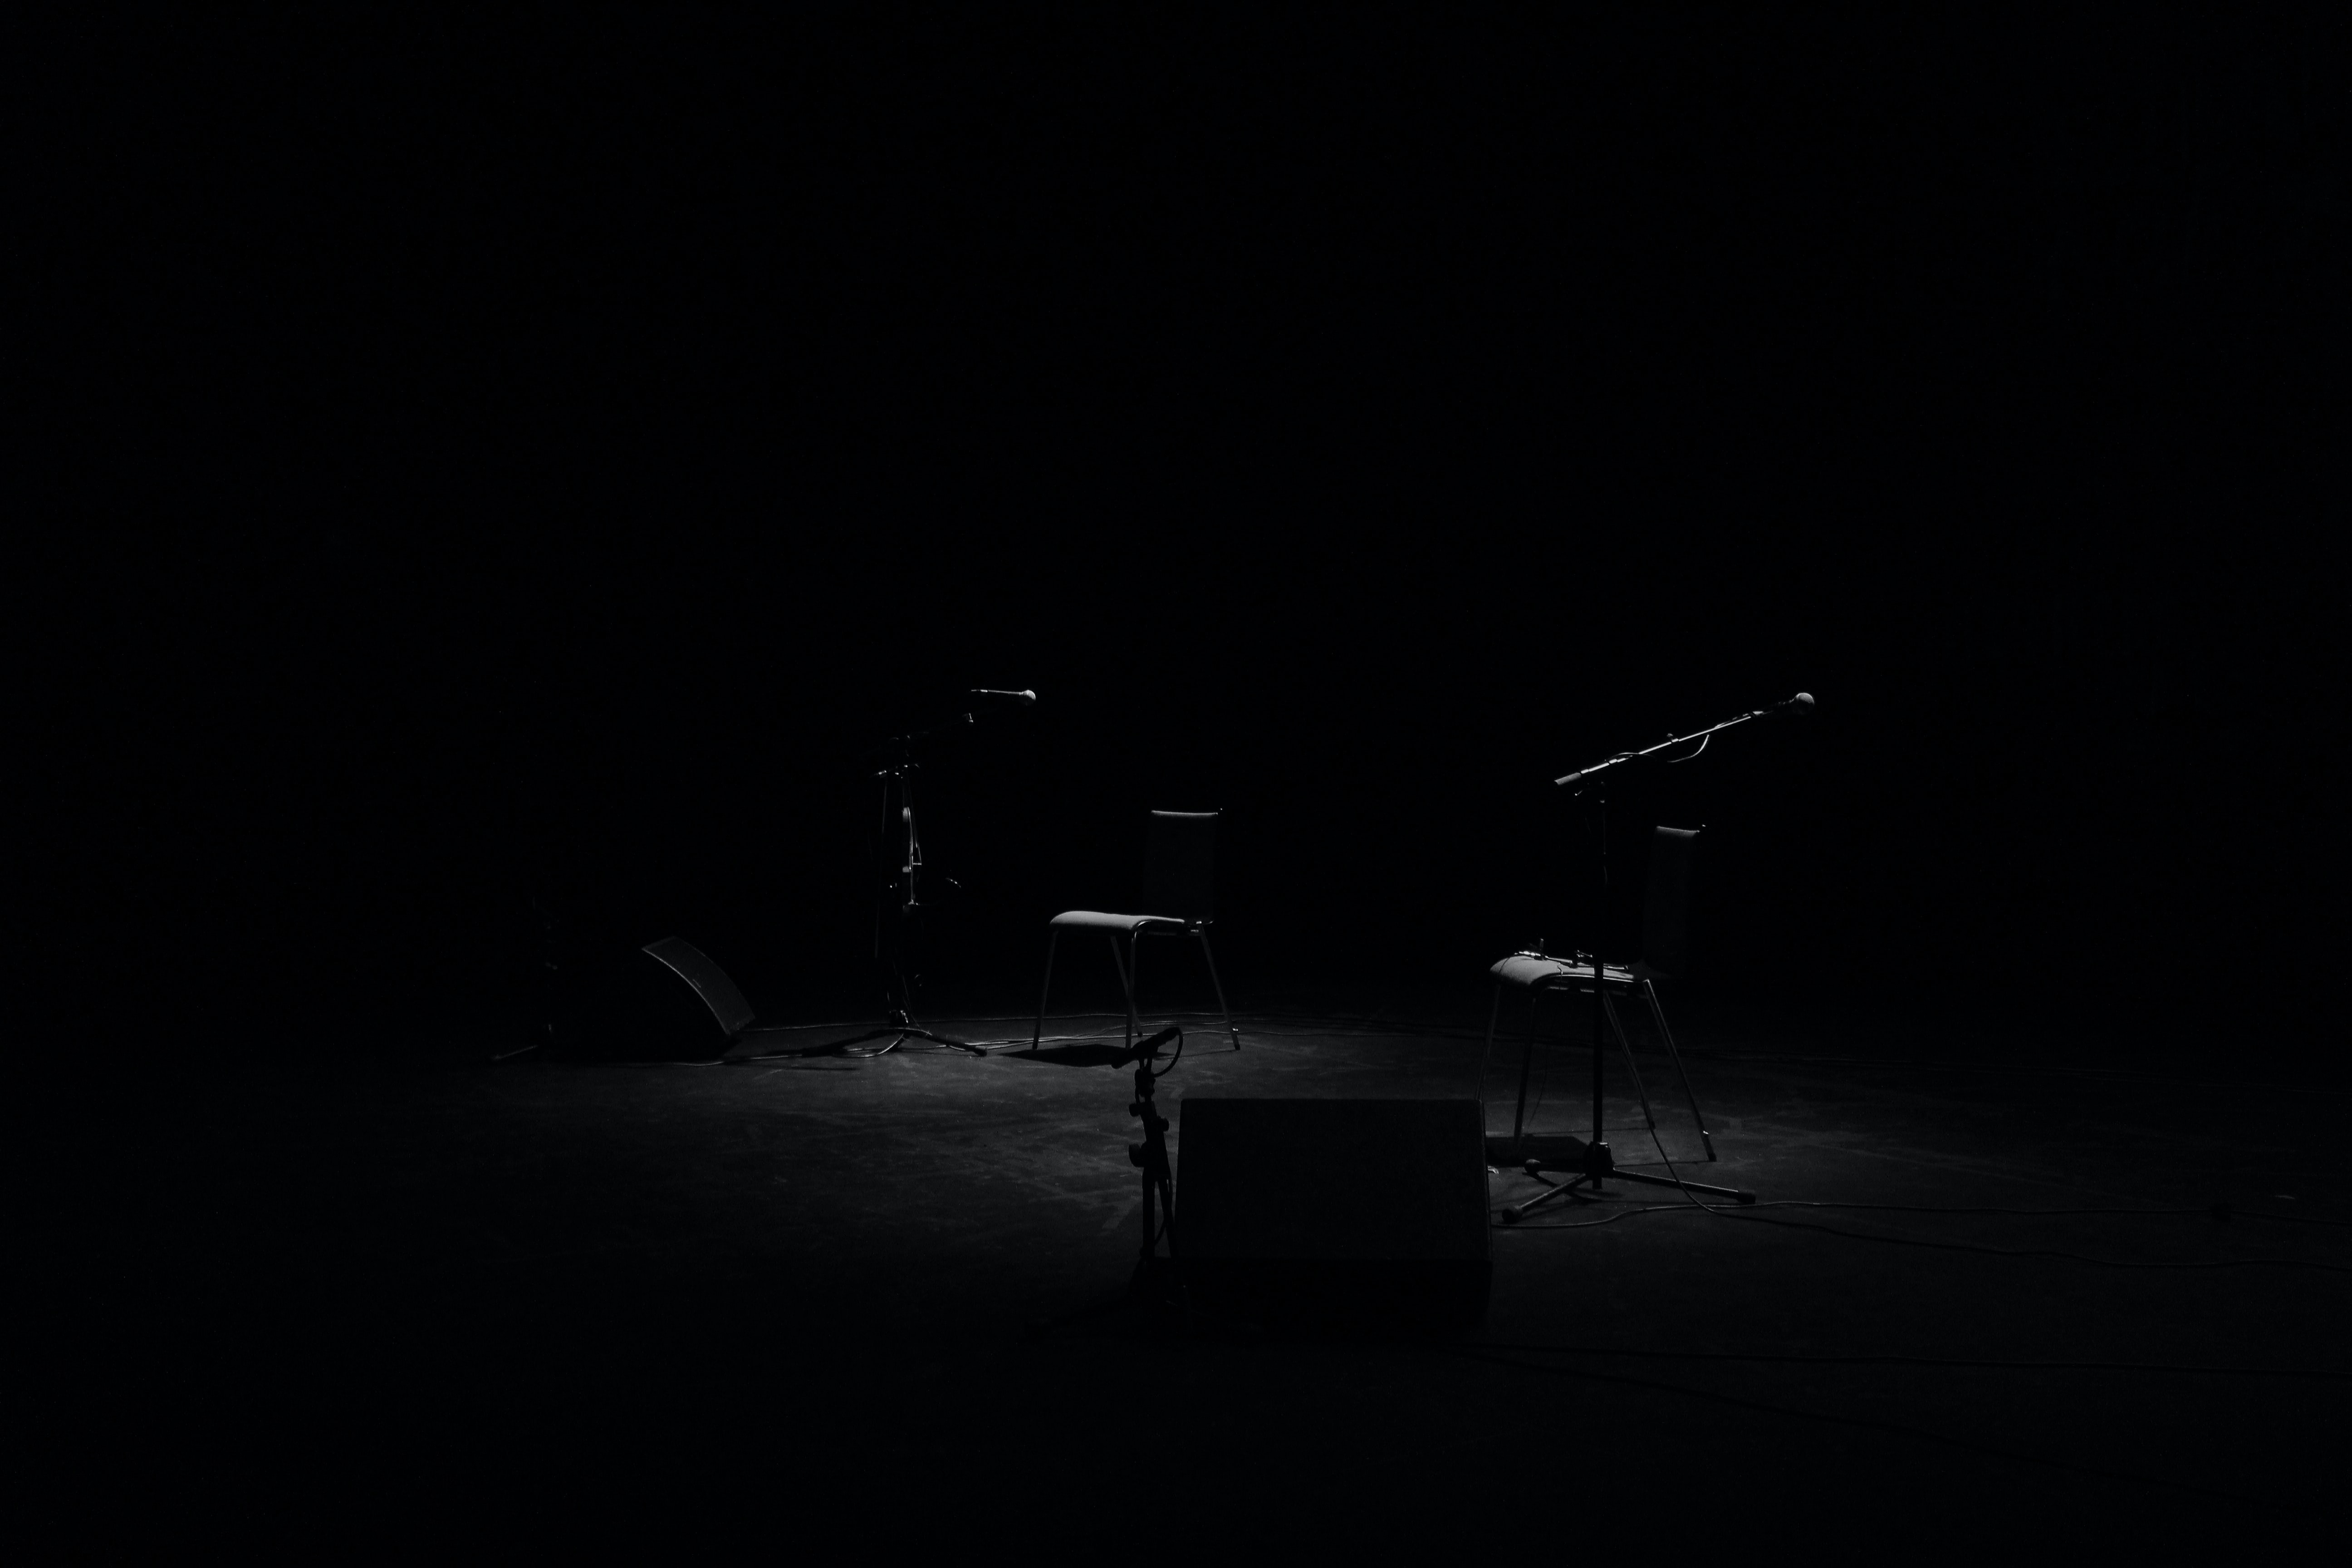 A Dim Shot Of Two Chairs And Microphone Stands On An Empty Stage